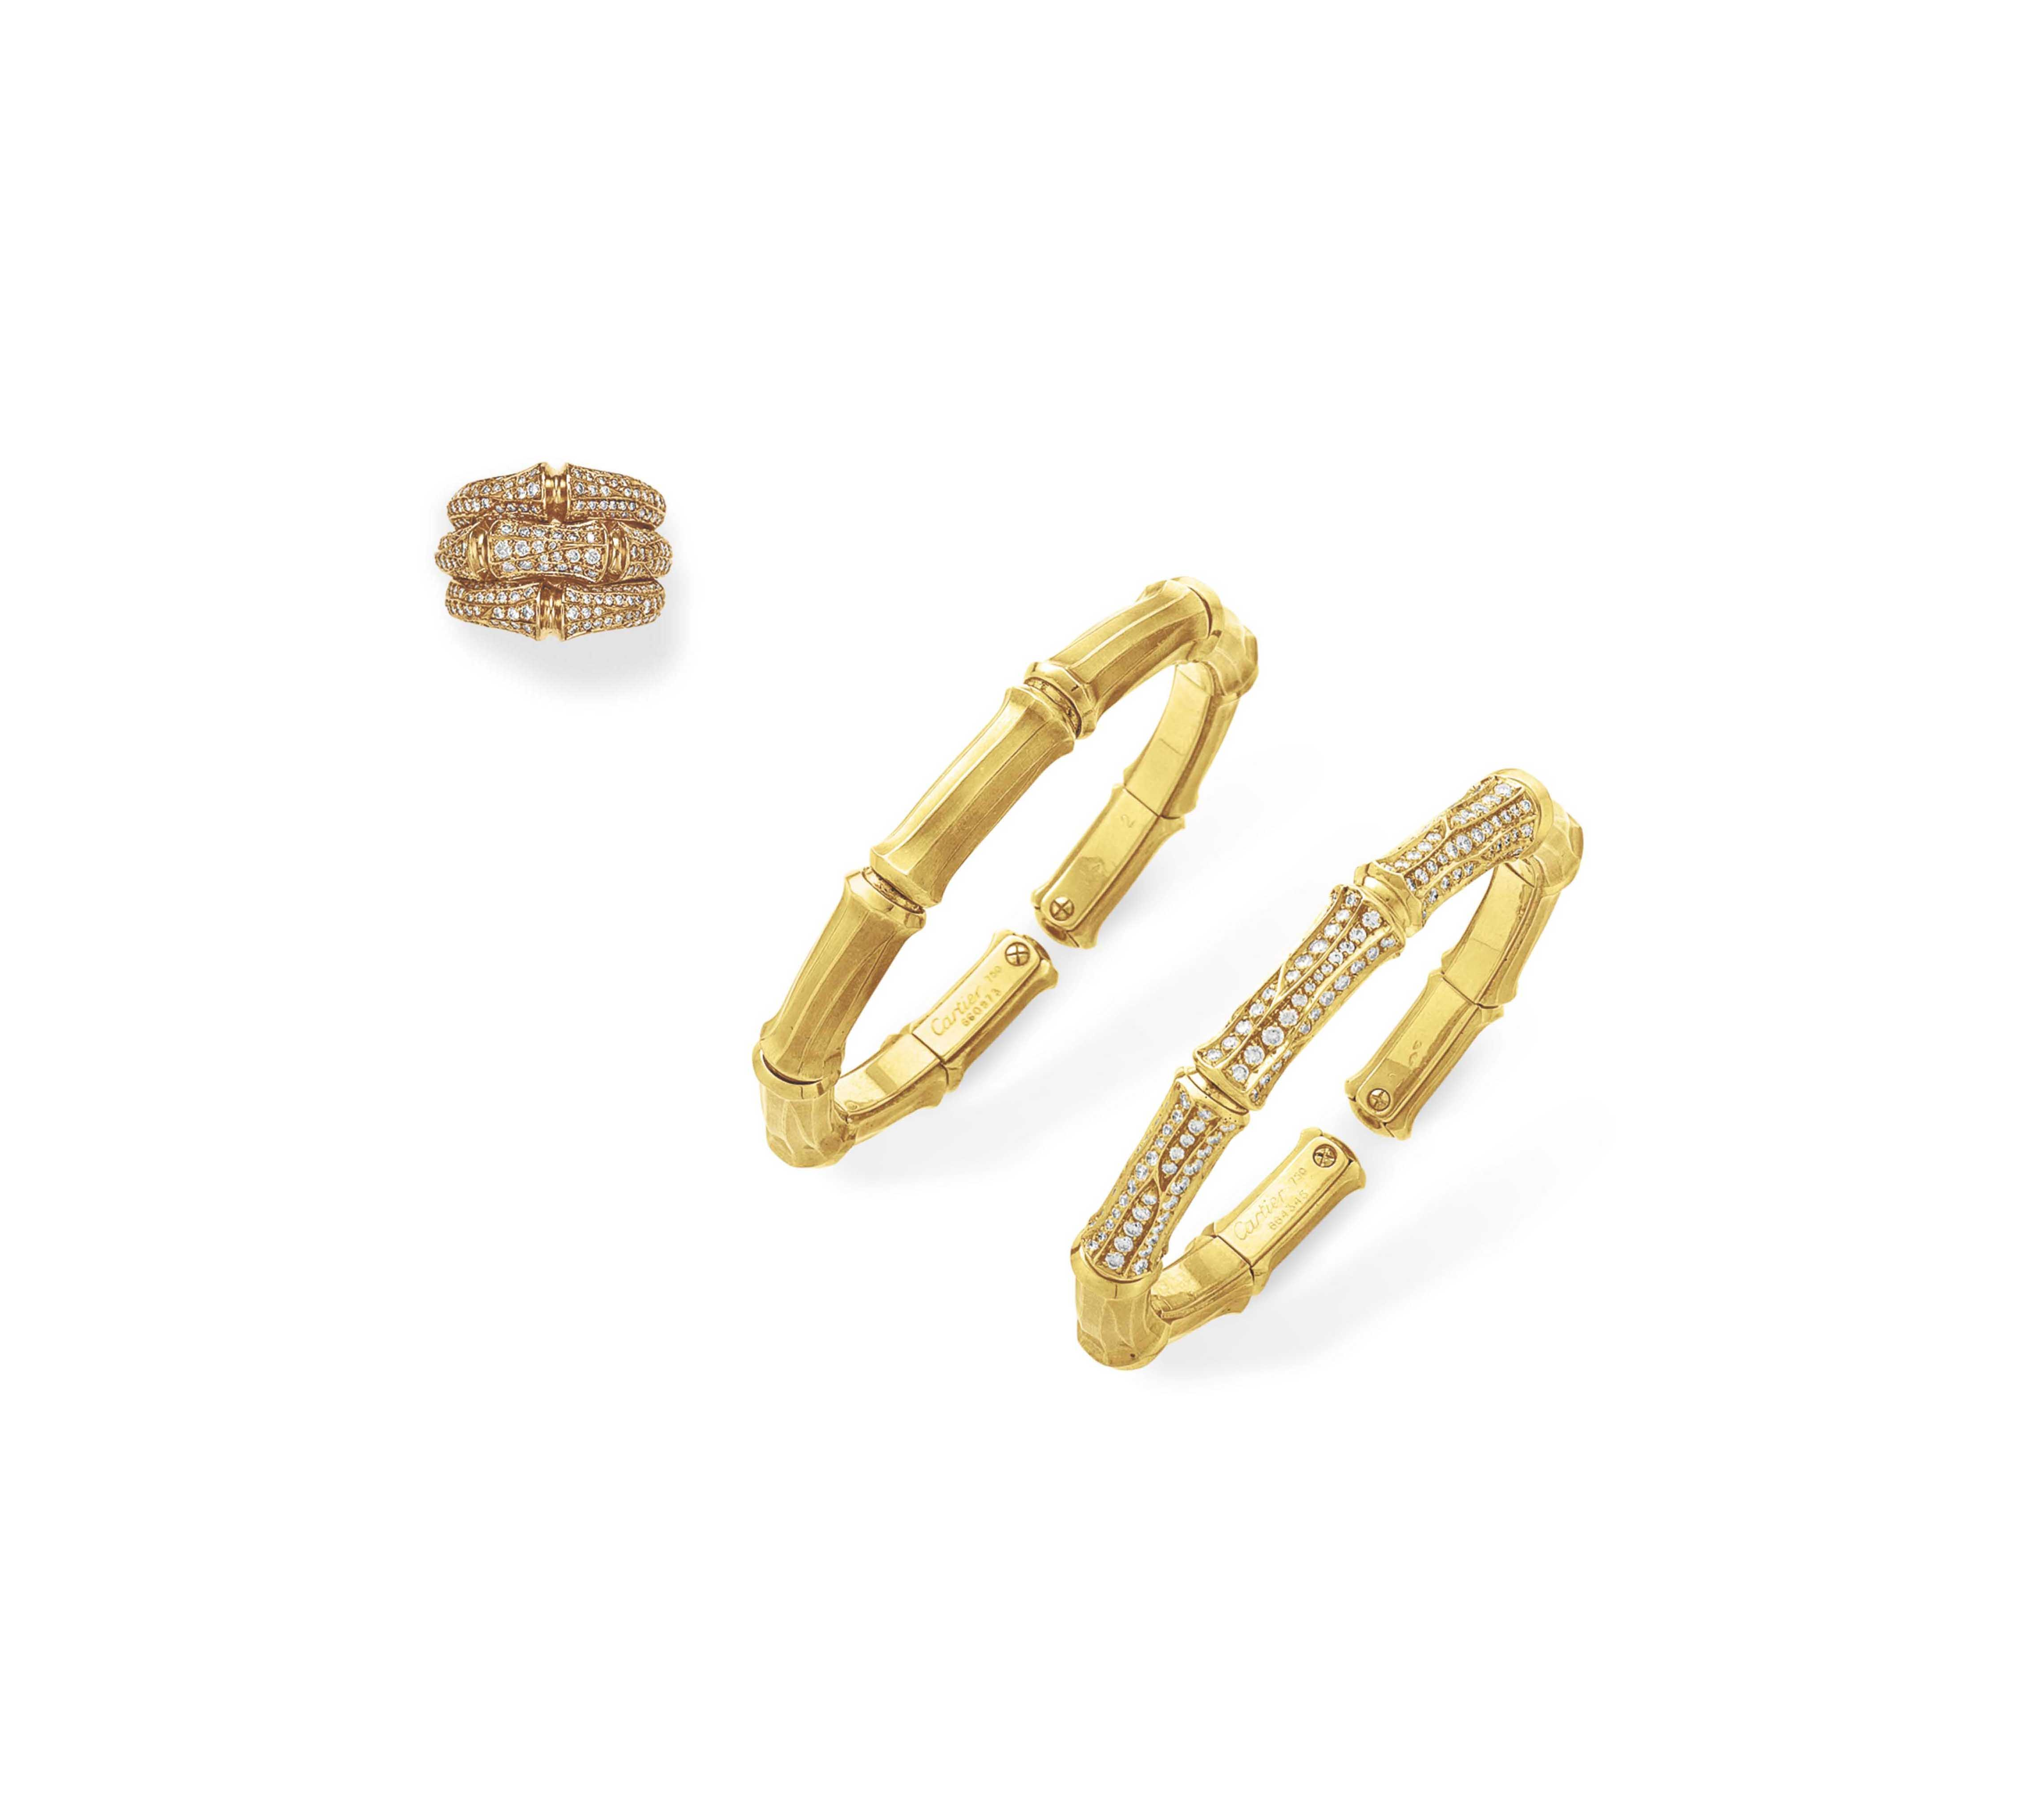 A SET OF DIAMOND AND GOLD JEWELRY, BY CARTIER